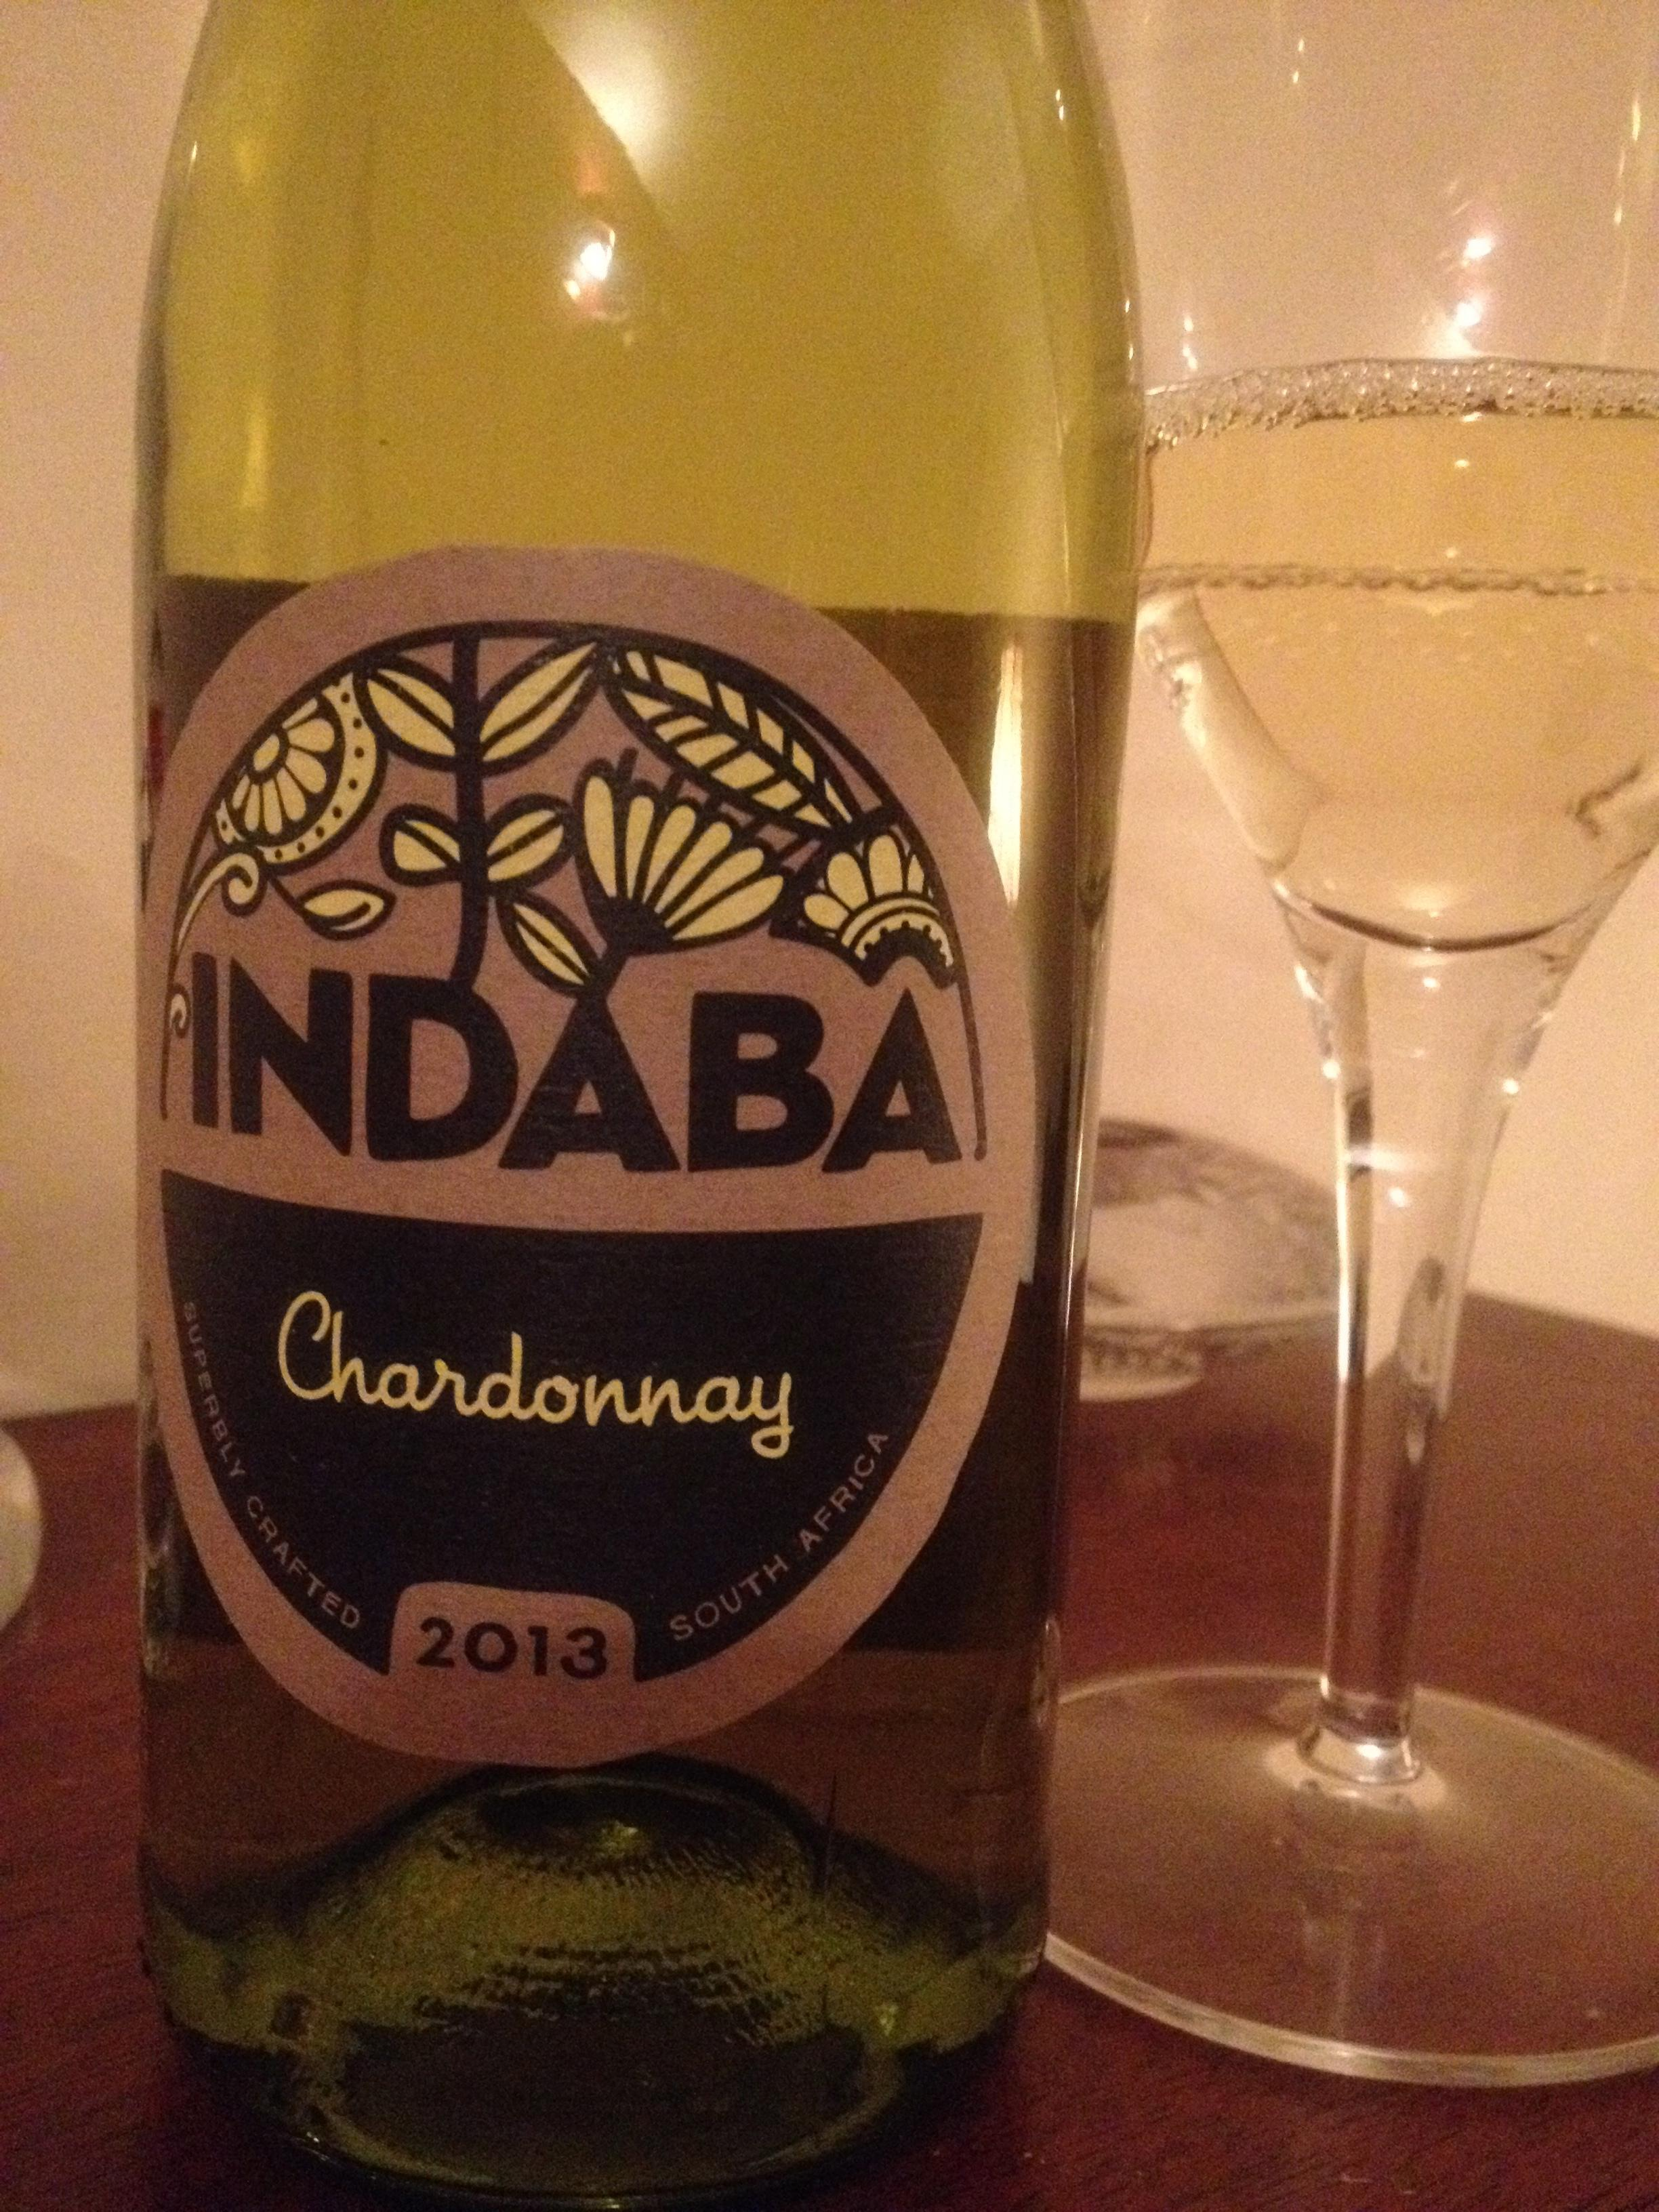 Indaba Chardonnay, Western Cape, South Africa 3